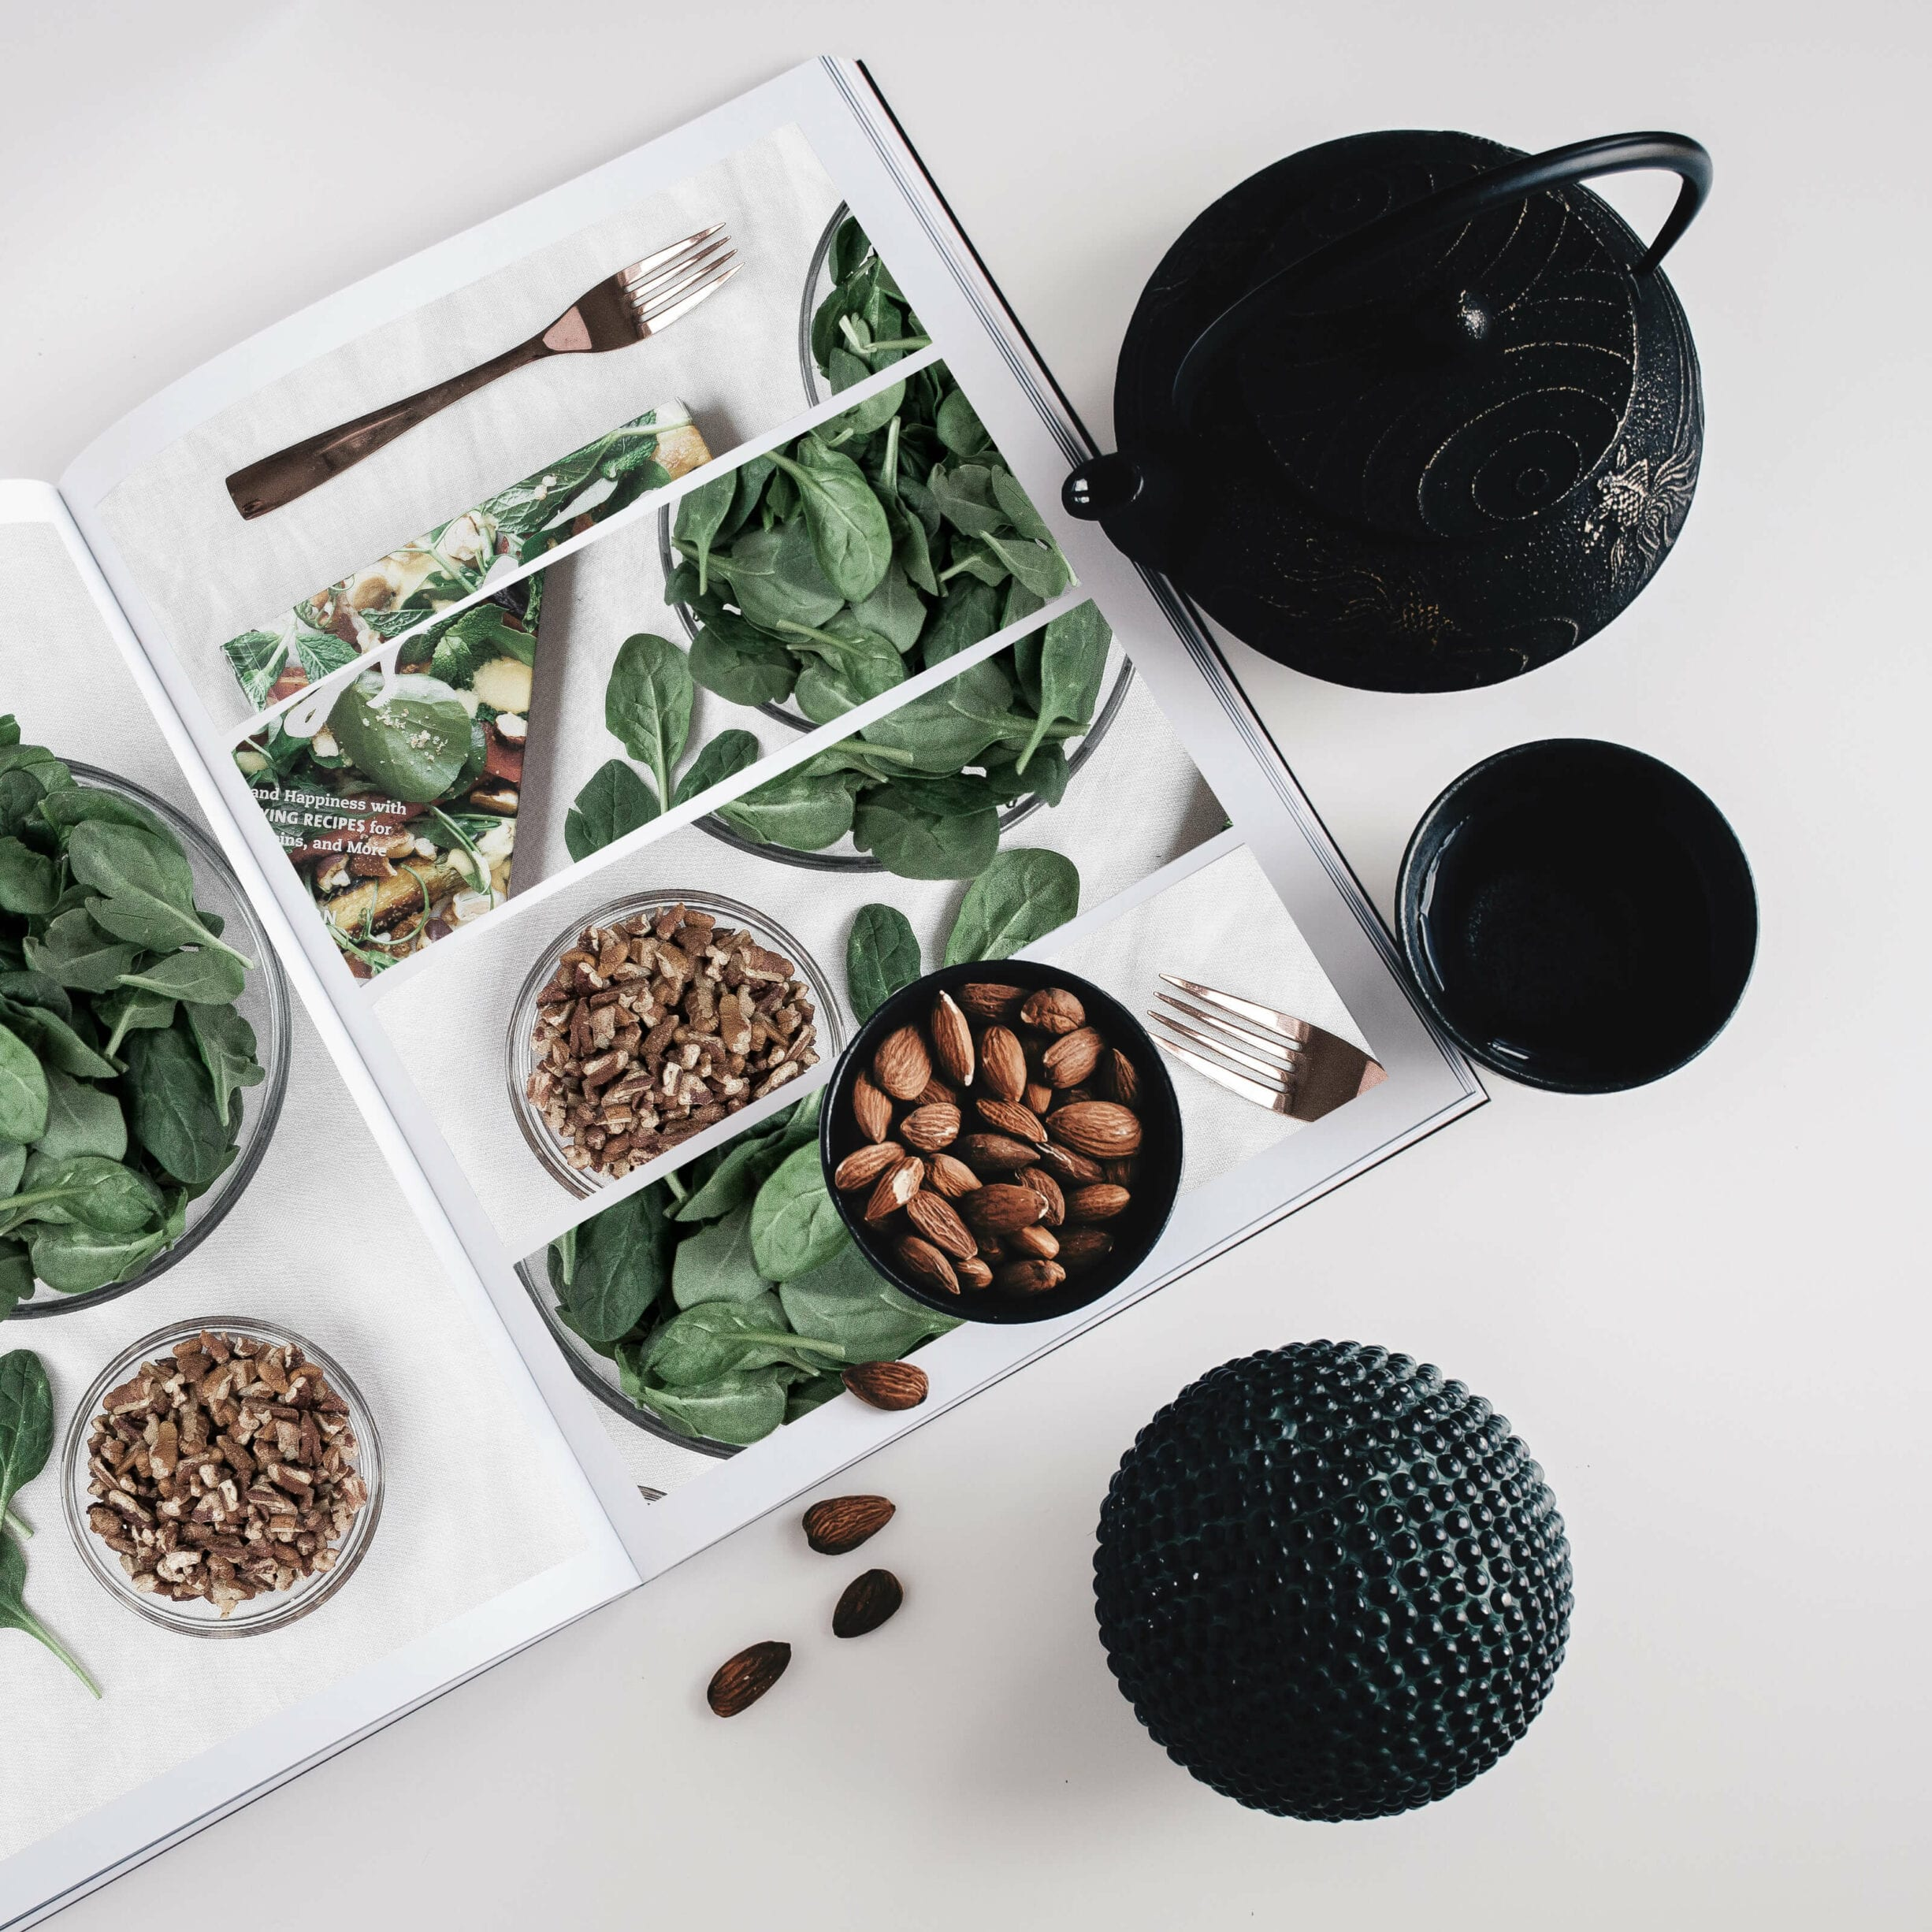 book, pictures of food, bowls, almonds, tea kettle